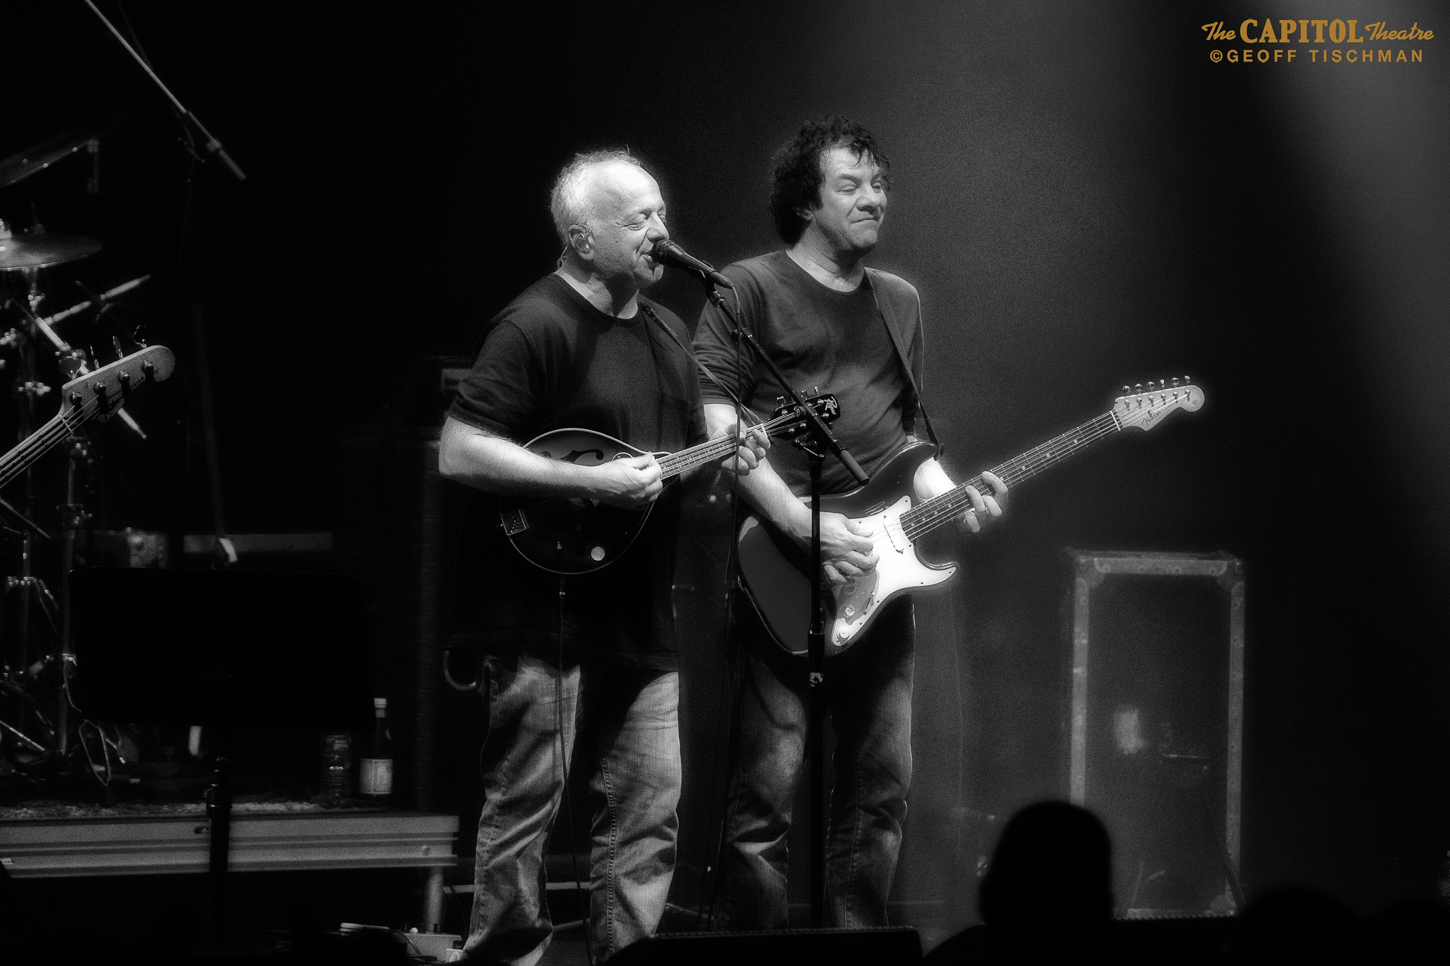 Ween Live At The Capitol Theatre, New York